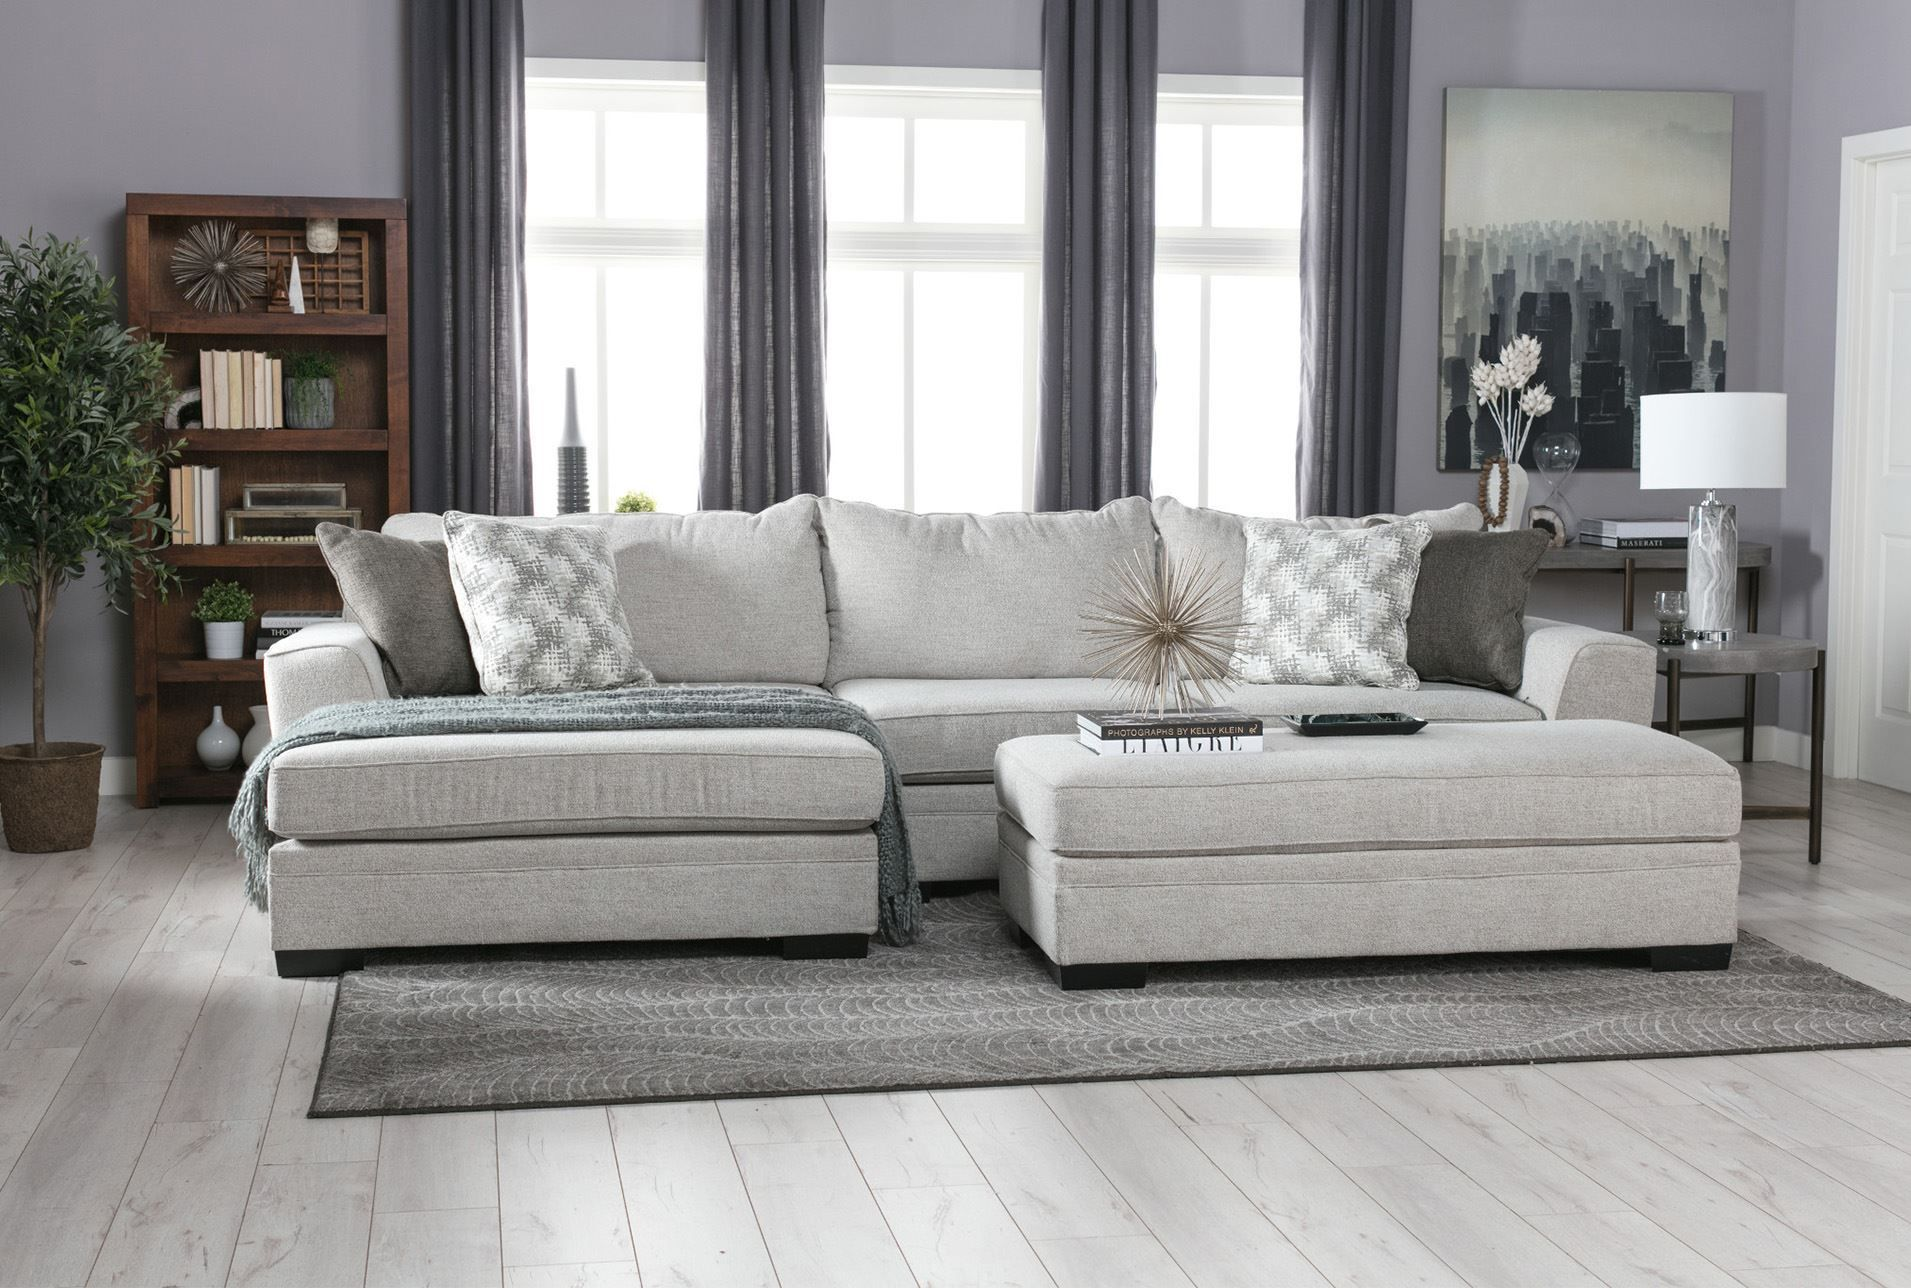 This Is The One We Have I Think Delano 2 Piece Sectional W X2f Laf Chaise Transitional Living Rooms Cheap Living Room Sets Contemporary Bedroom Furniture